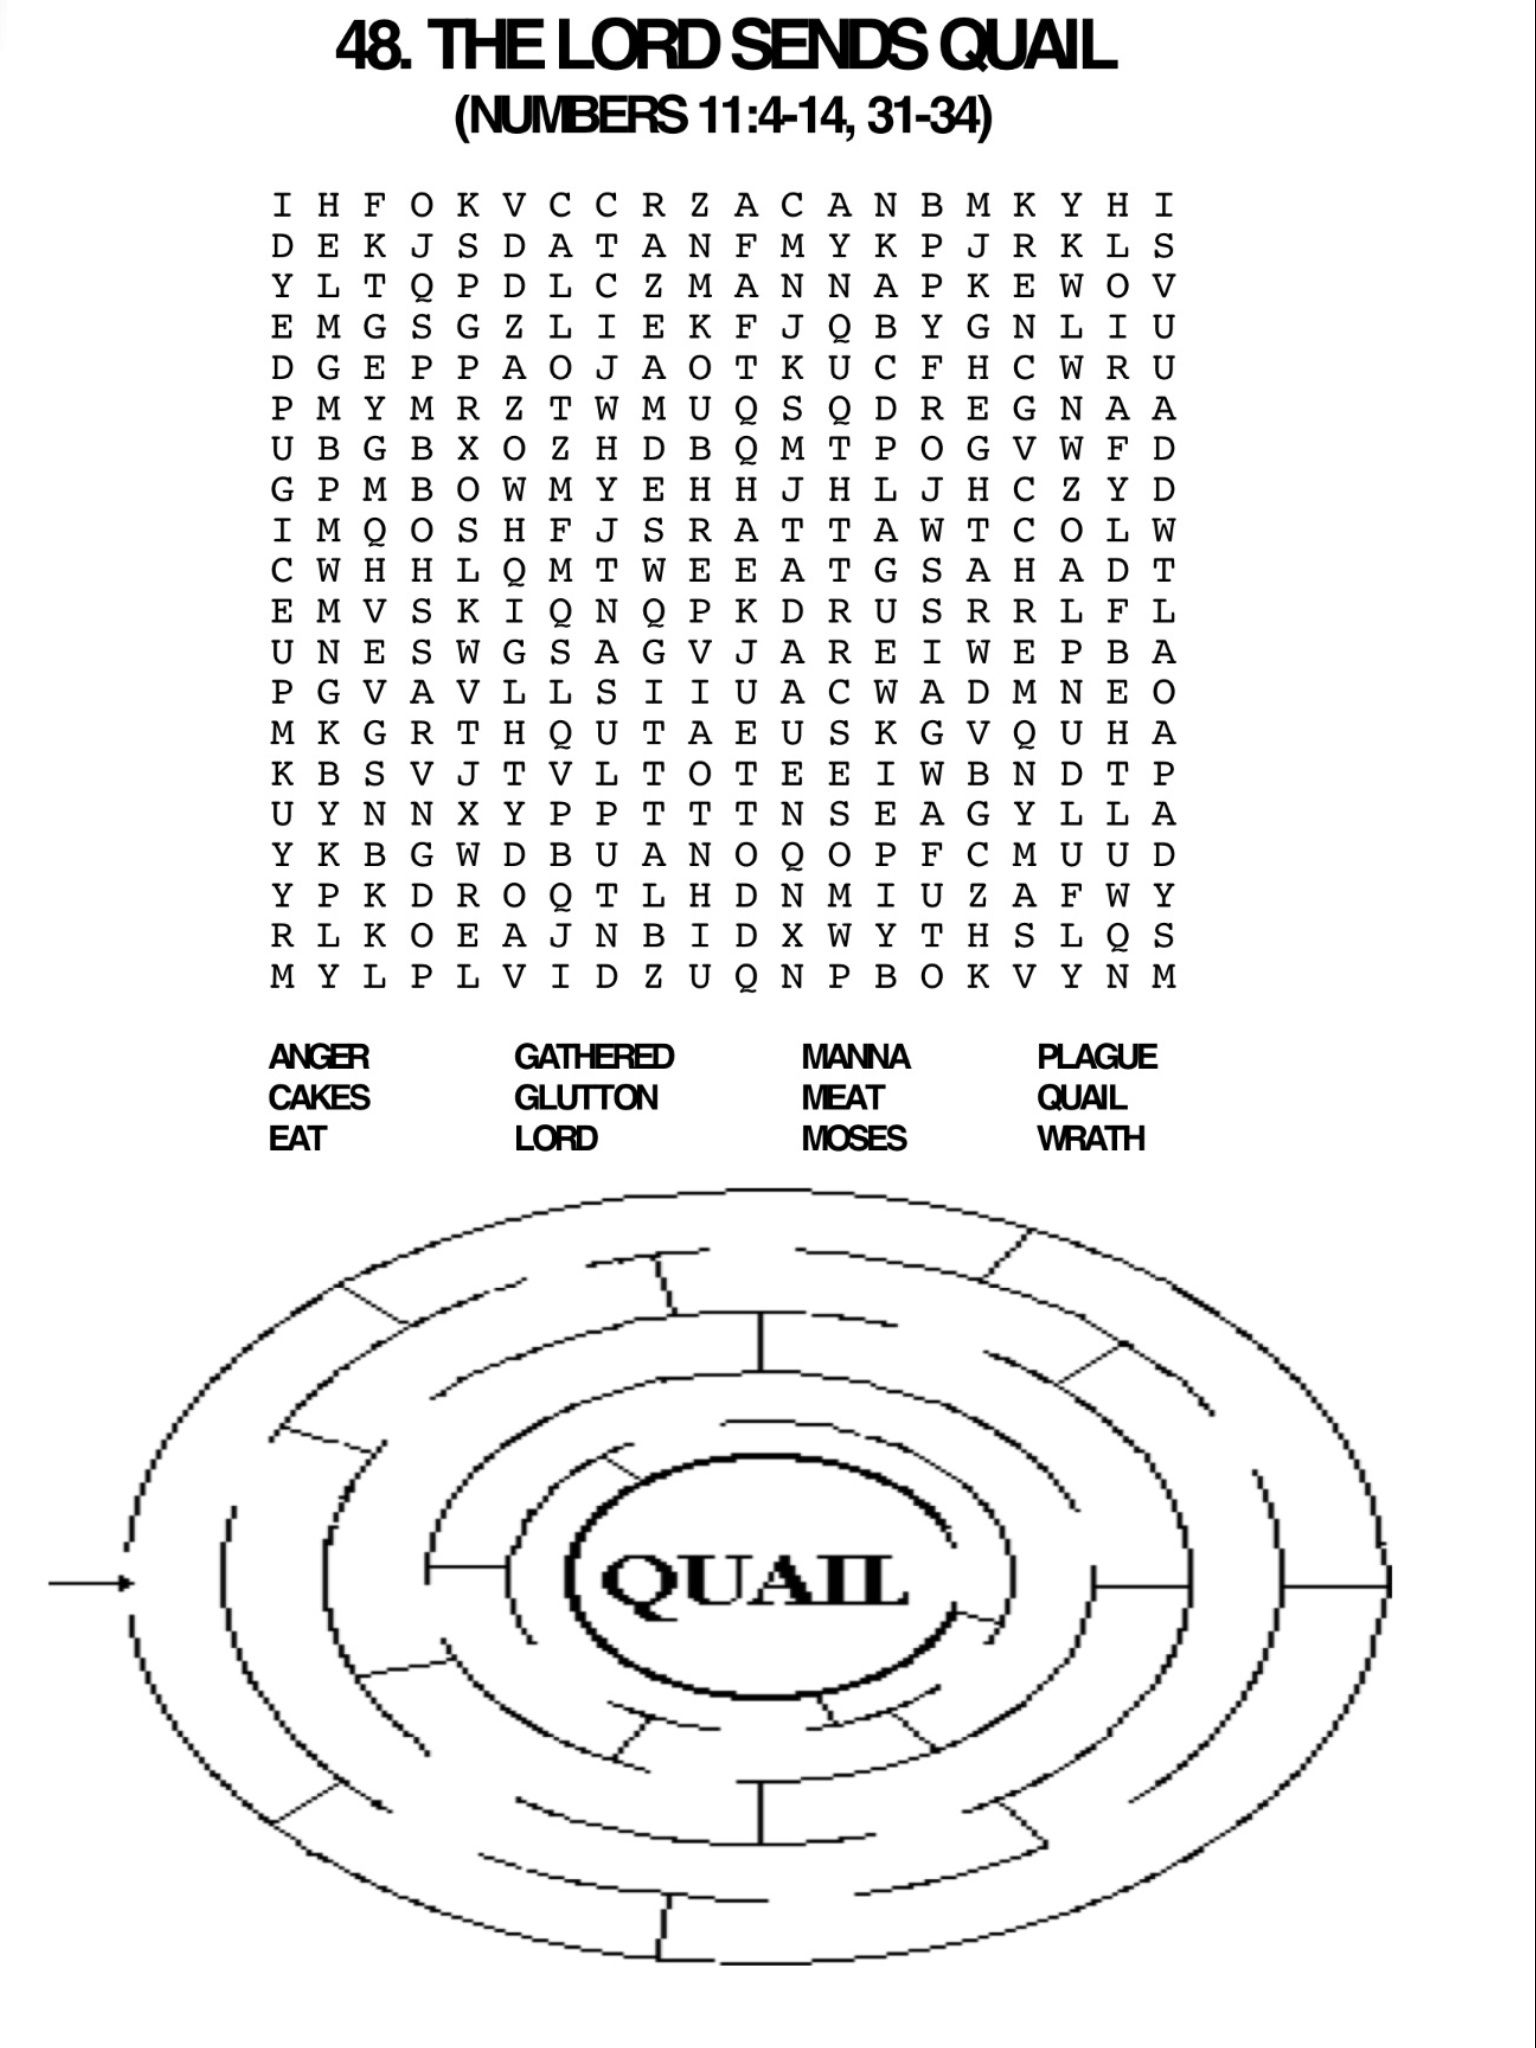 Quail word search and maze | VBS - manna and quail | Pinterest ...